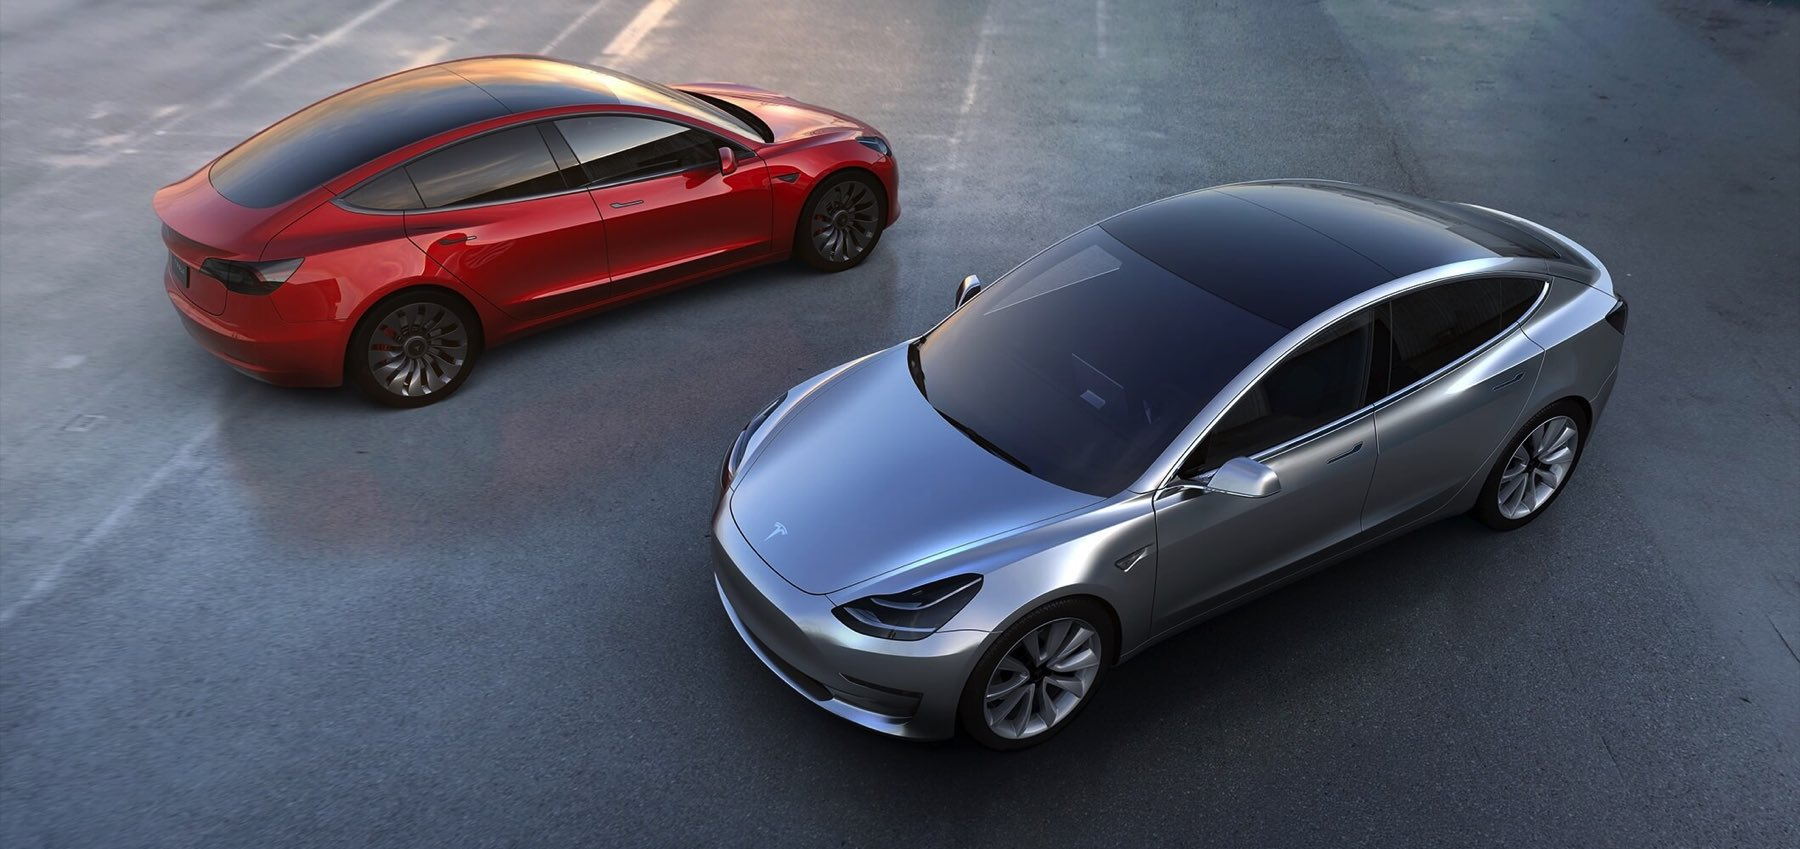 The Tesla Motors Model 3